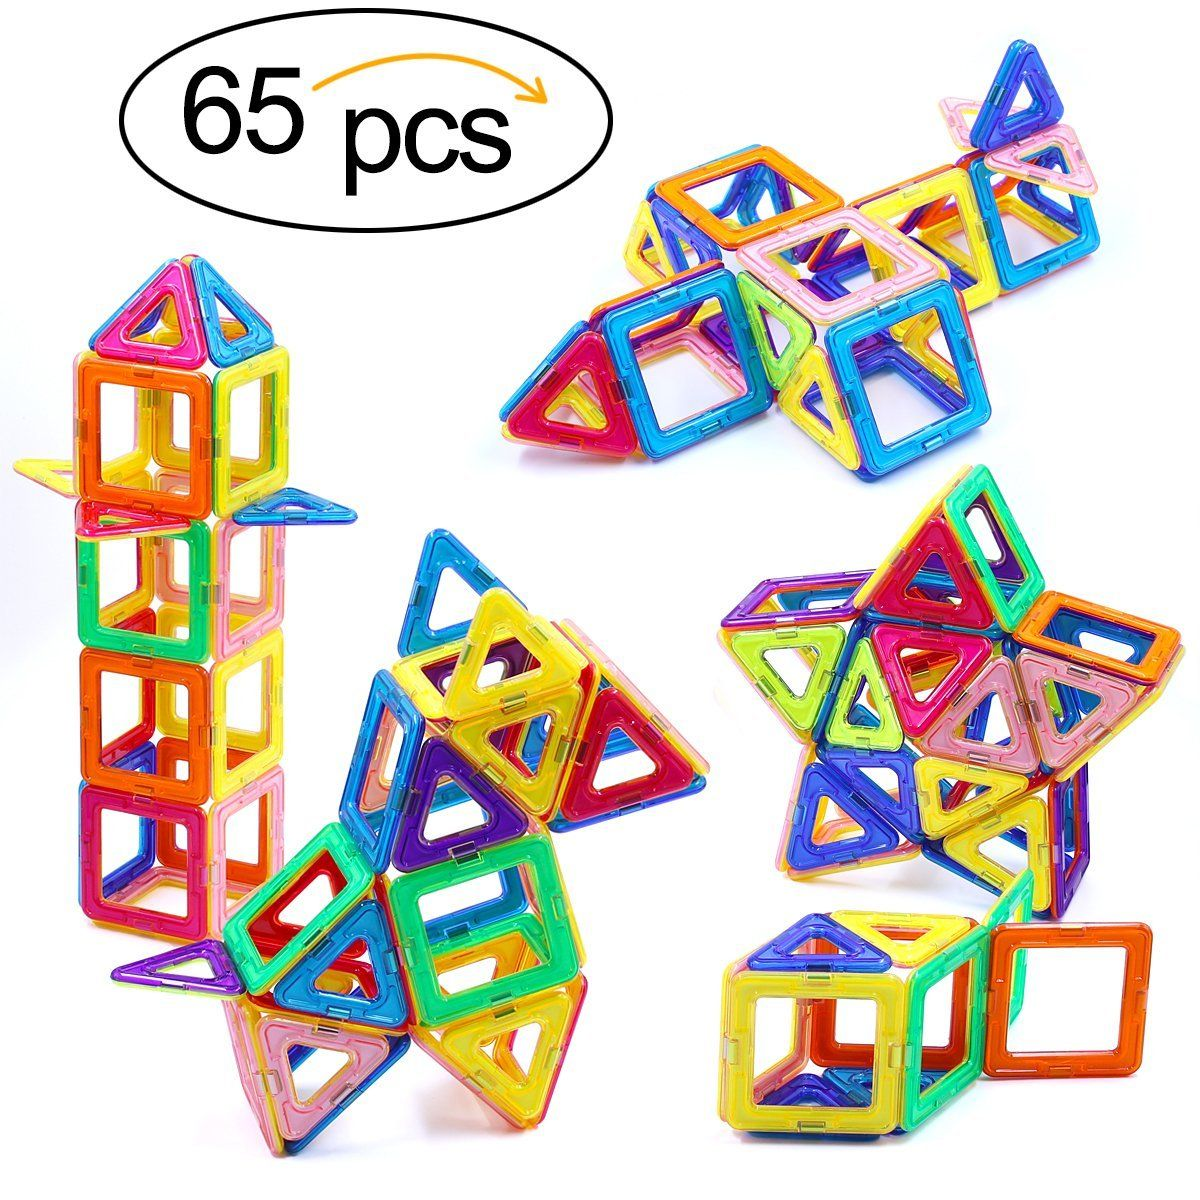 Magnetic Blocks, Ranphykx 65 Piece Magnetic Building Blocks Set Magnetic Tiles Educational Toys for Kids *** Read more at the image link. (This is an affiliate link) #GiftsforLegoLover